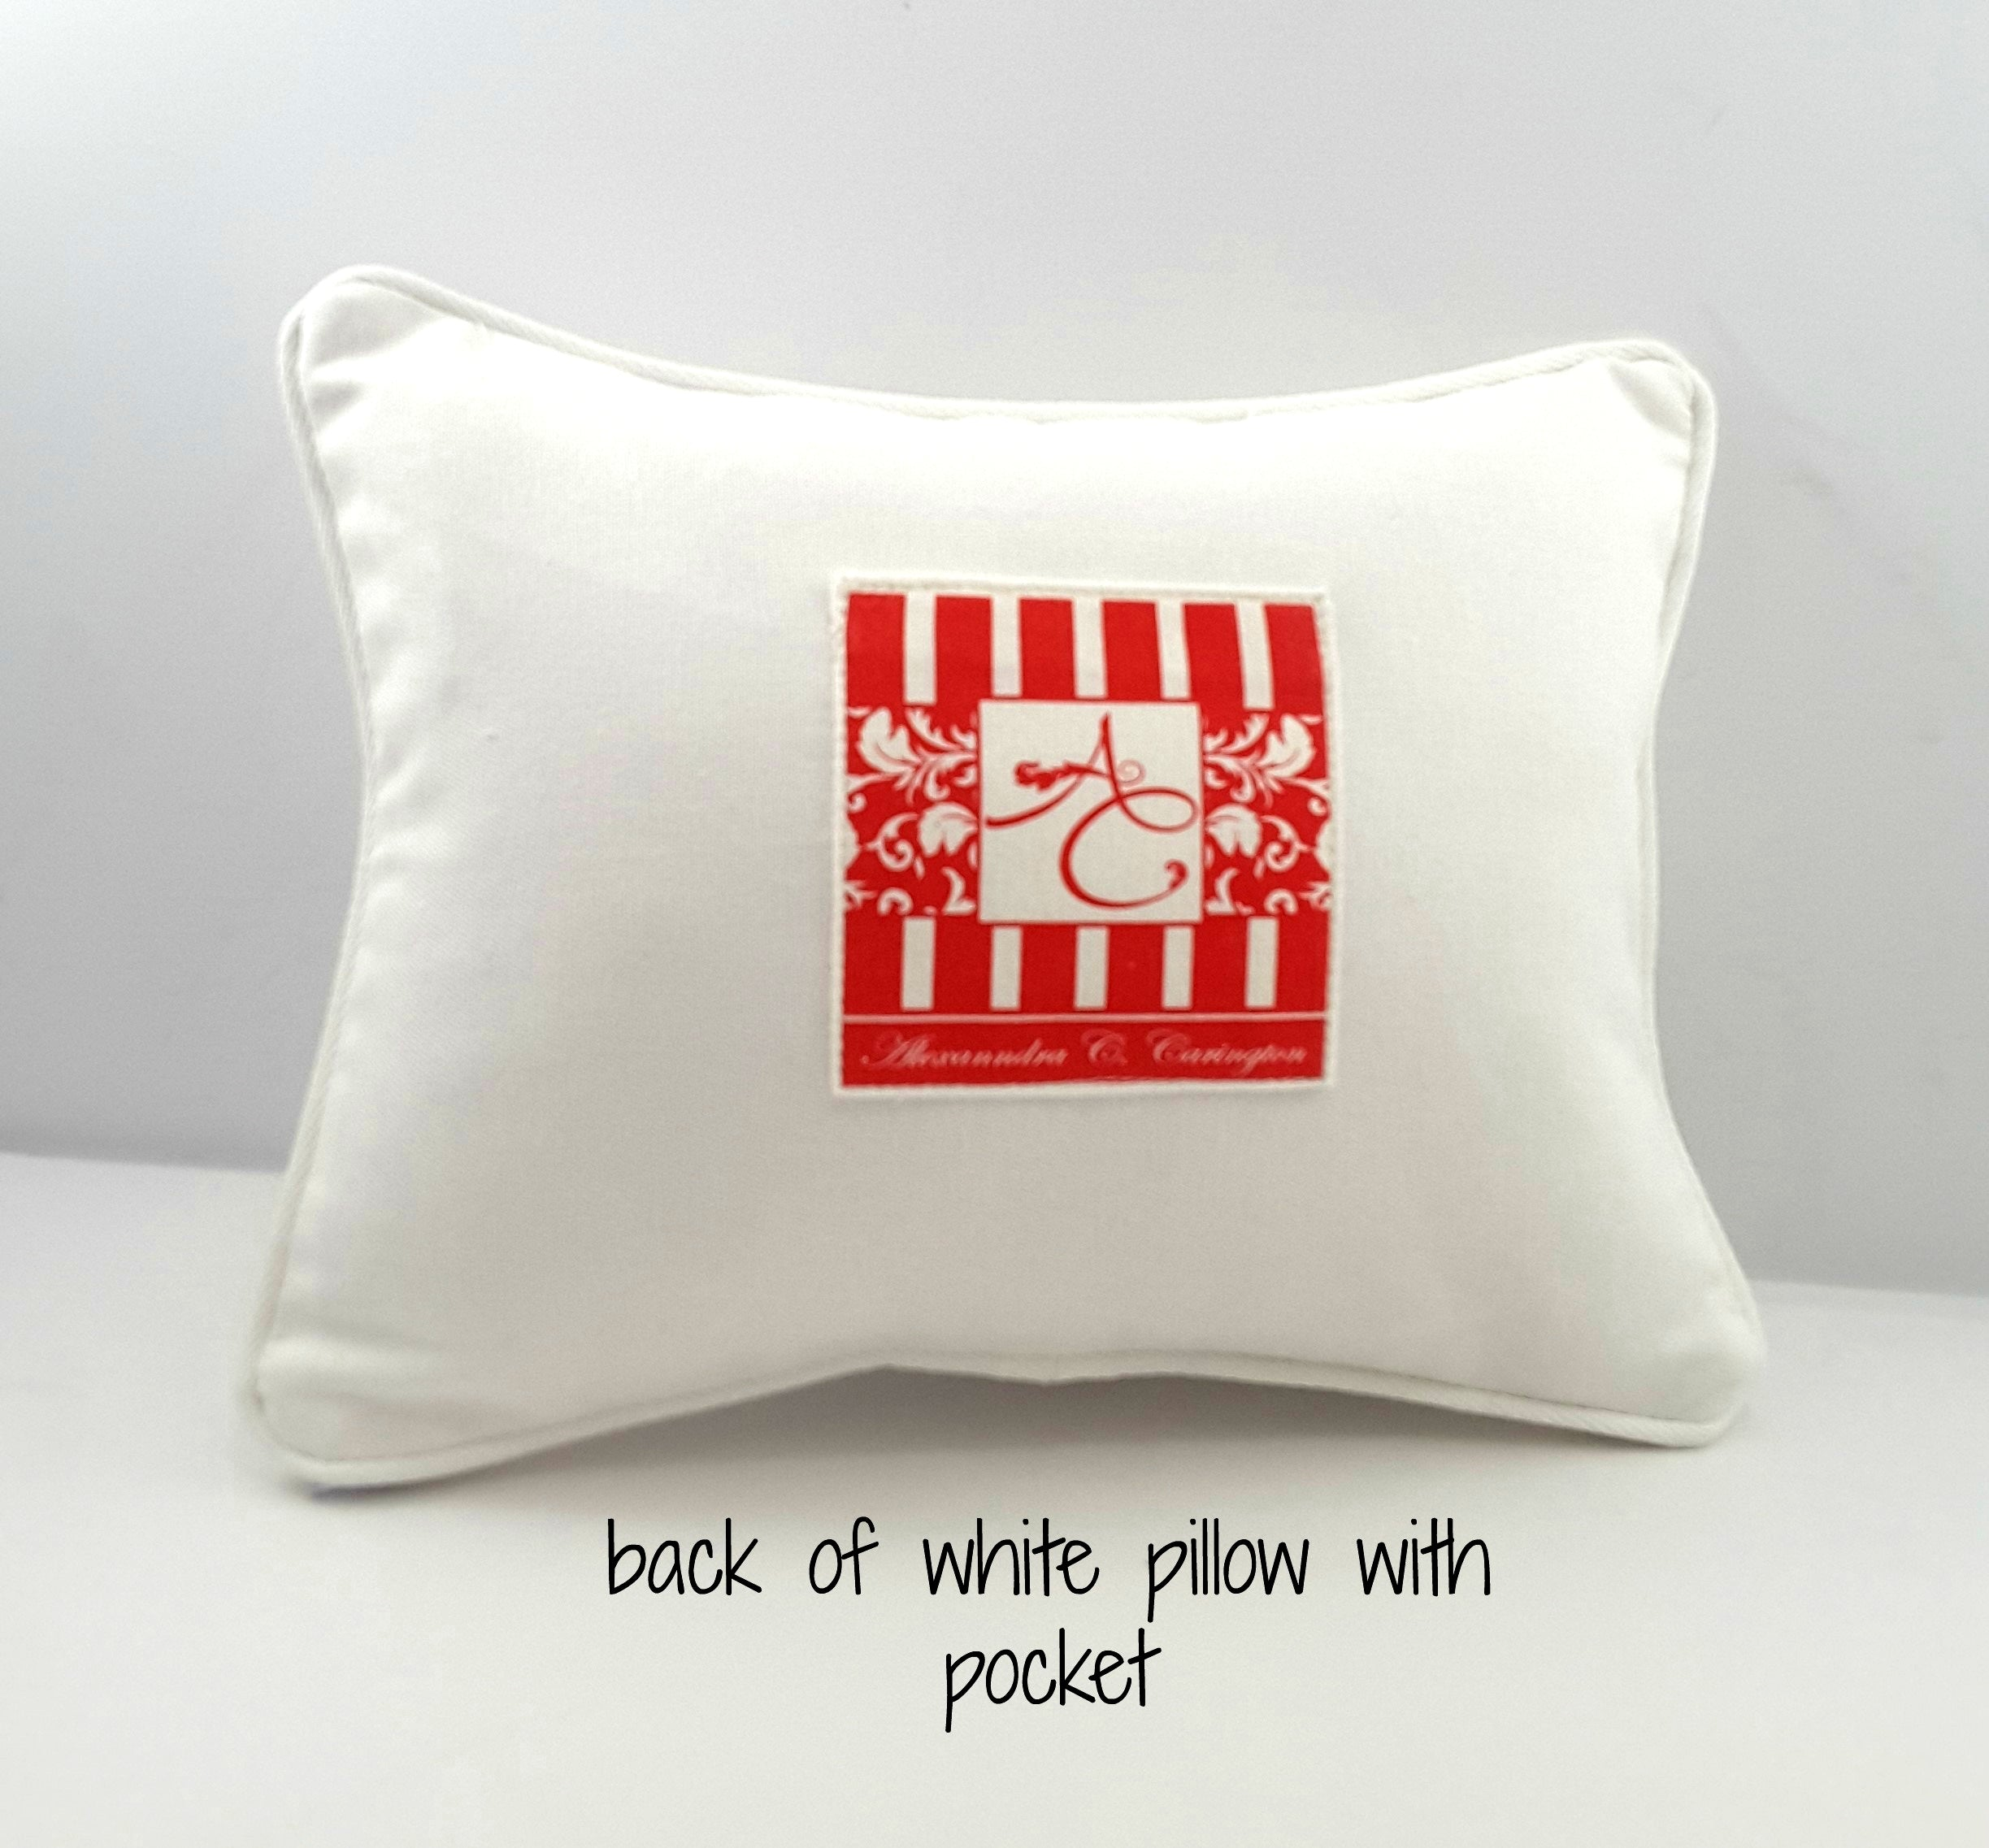 Push Button for Maid Service back of pillow with pocket